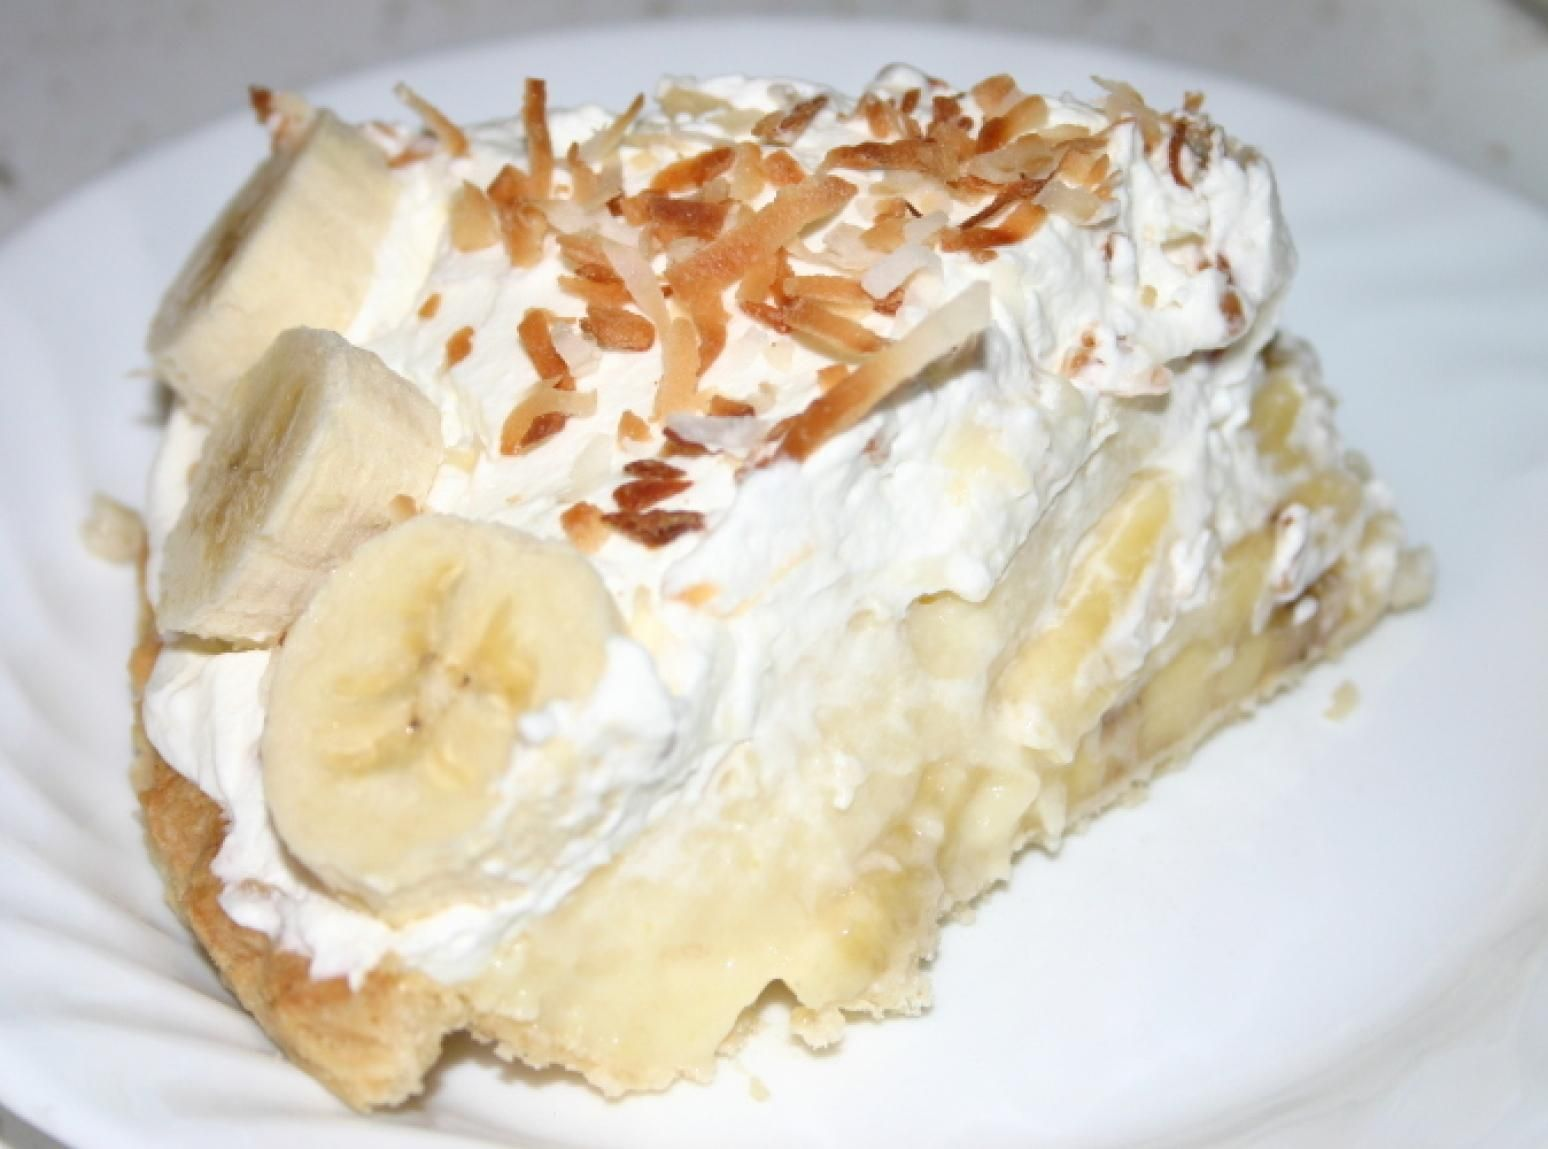 Creamy Banana Cream Pie #bananapie